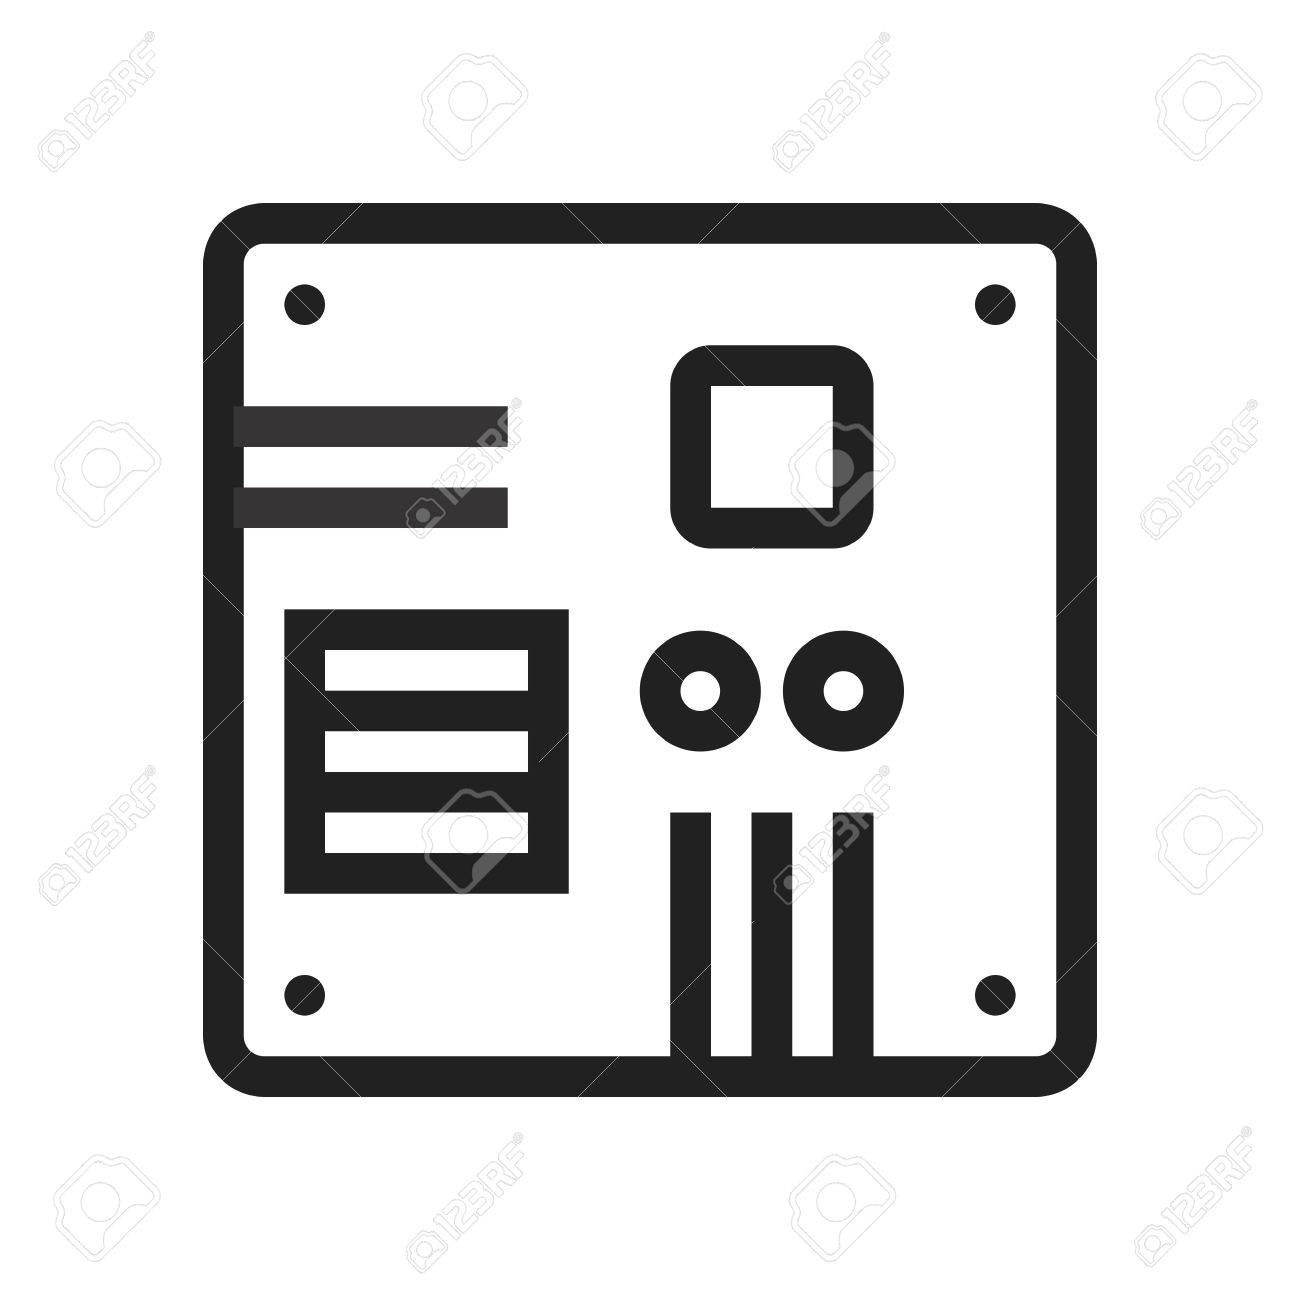 Motherboard, Computer, Circuit, Board Icon Vector Image. Can ...